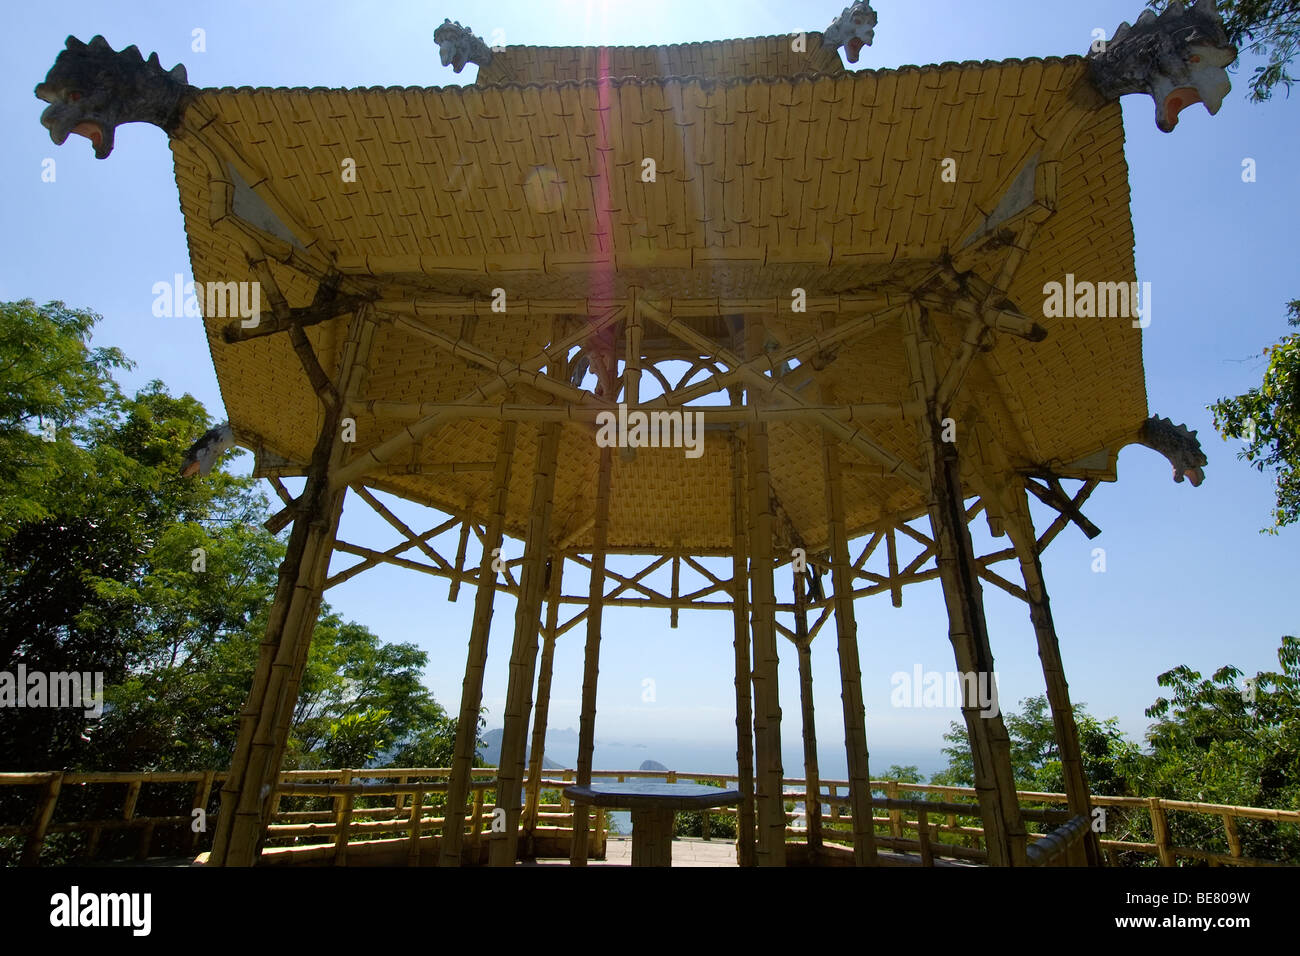 Chinese pagoda inside the Tijuca National Forest Park, Rio de Janeiro, Brazil Stock Photo